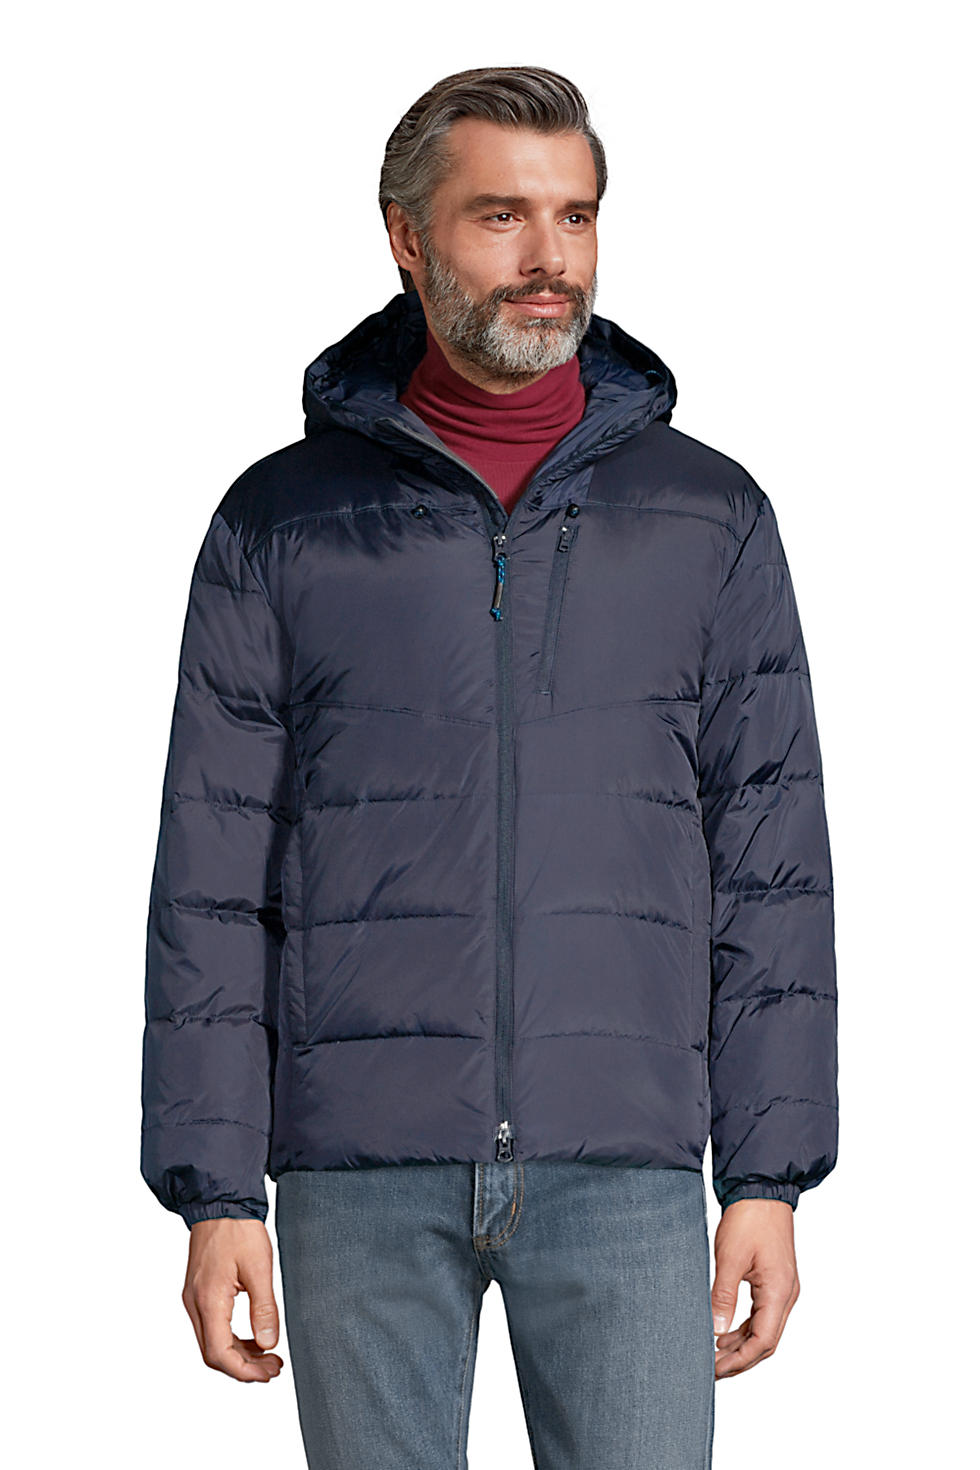 Lands End Men's Expedition Winter Down Puffer Jacket (various colors/sizes)